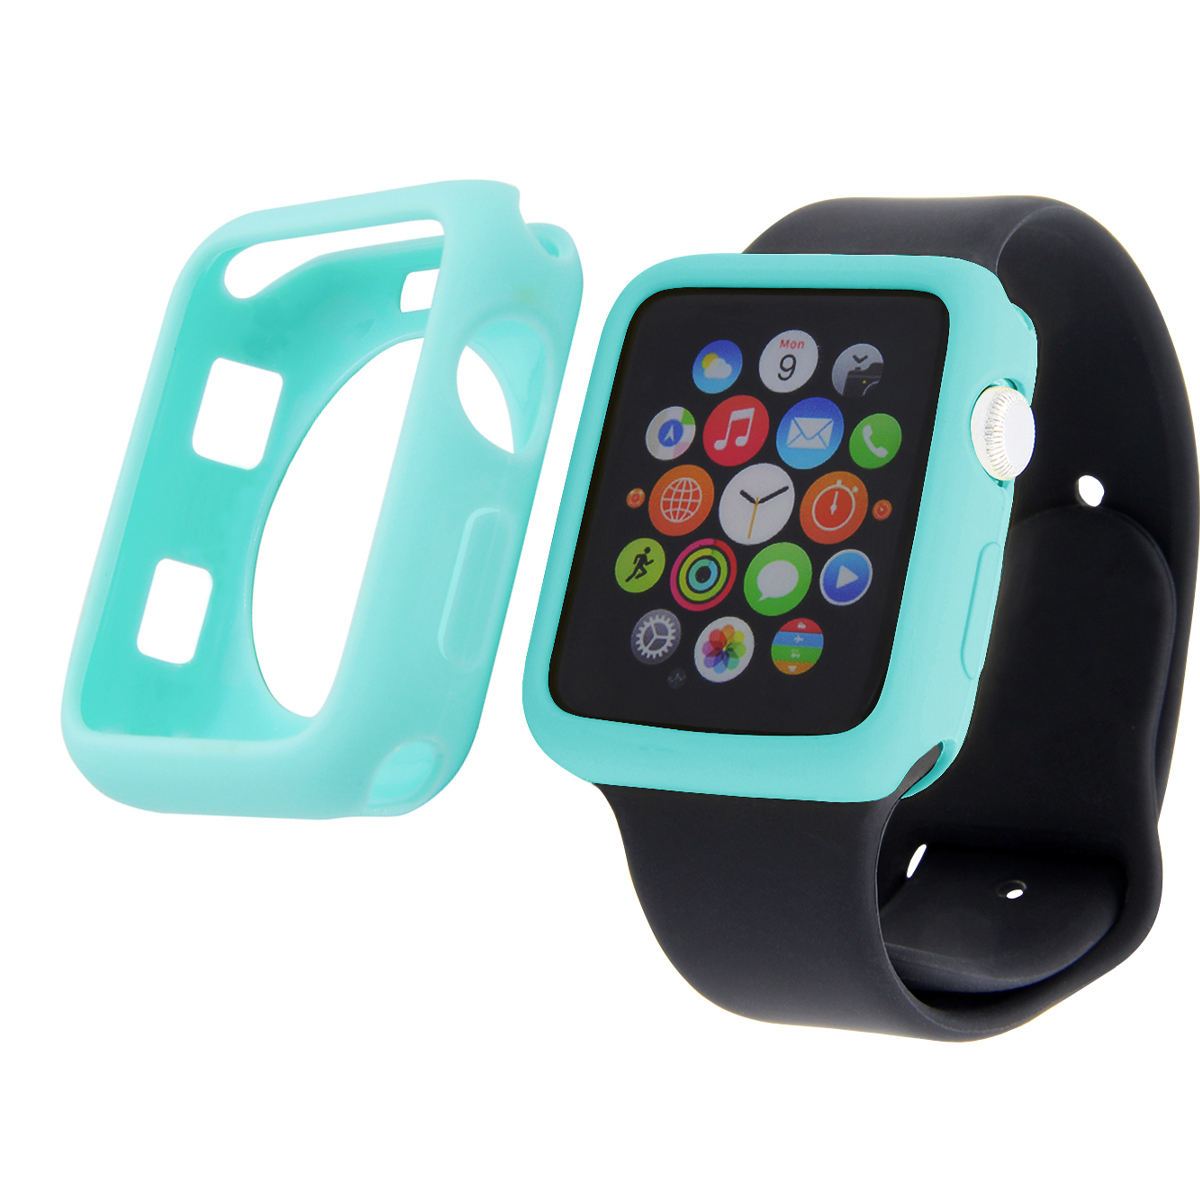 BOORUI colorful watch face cover for apple watch band with candy color protective cover for iwatch silicone case